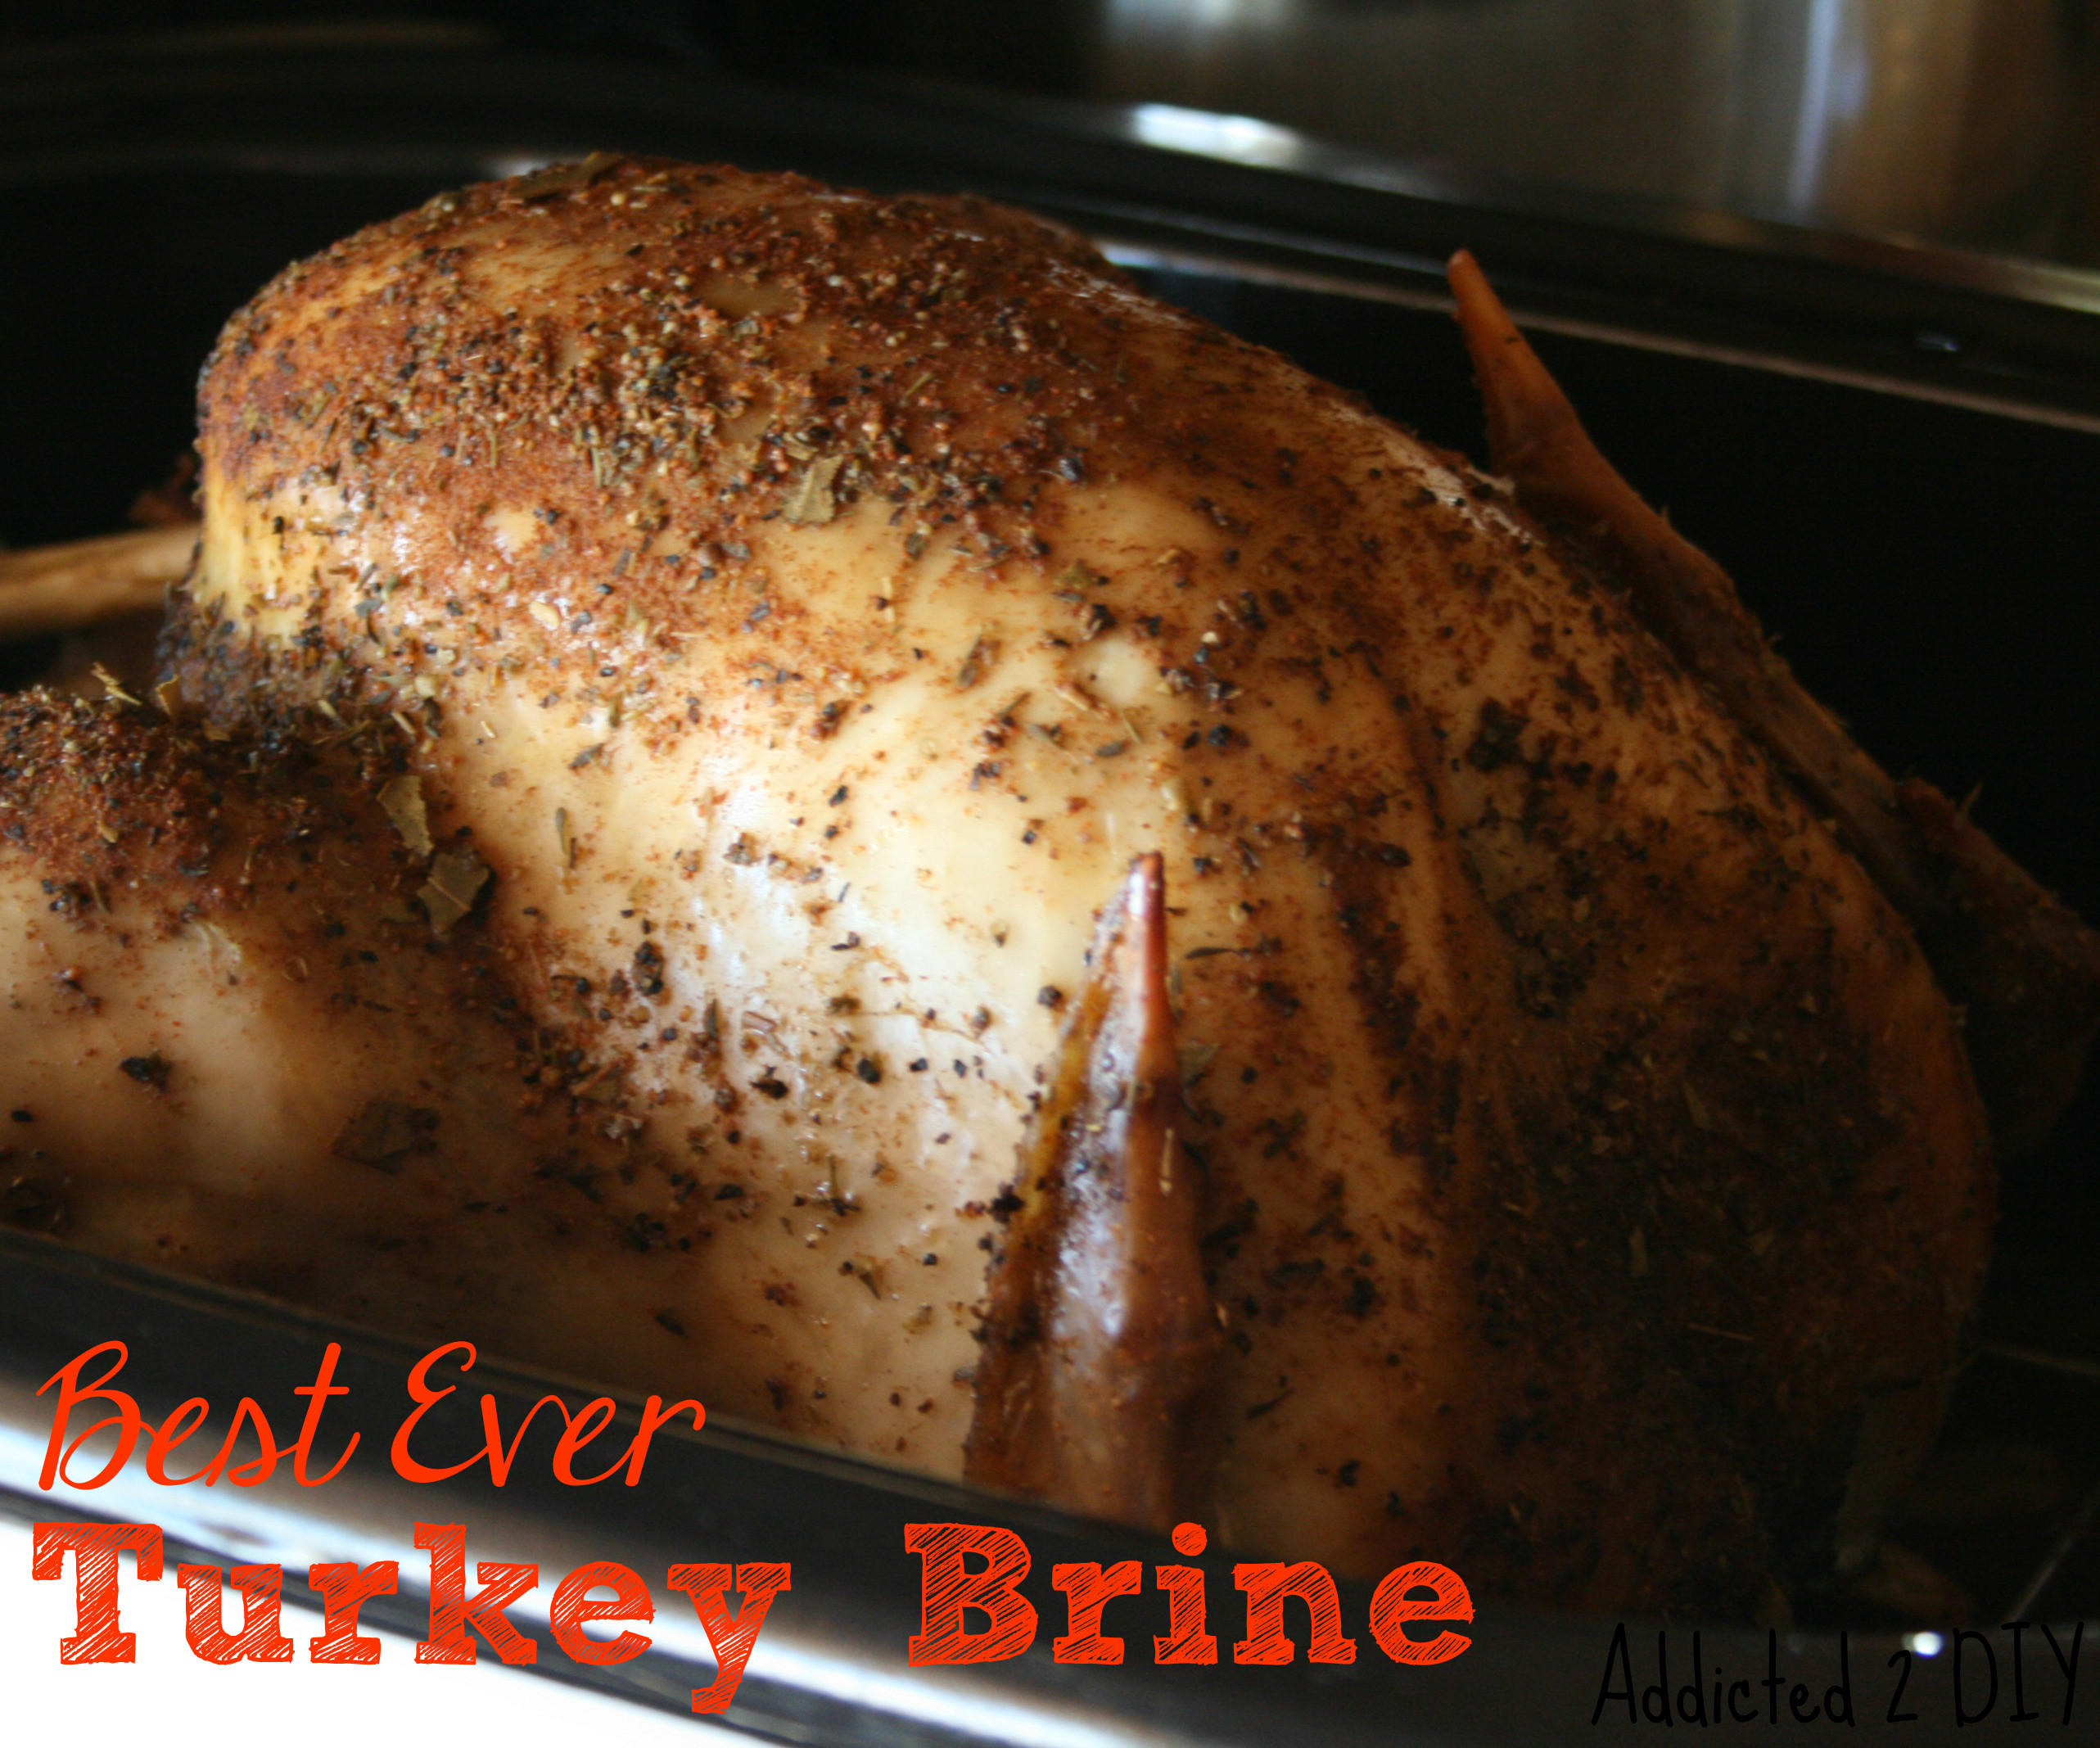 Best Turkey Brine Recipe Thanksgiving  Best Ever Turkey Brine Addicted 2 DIY